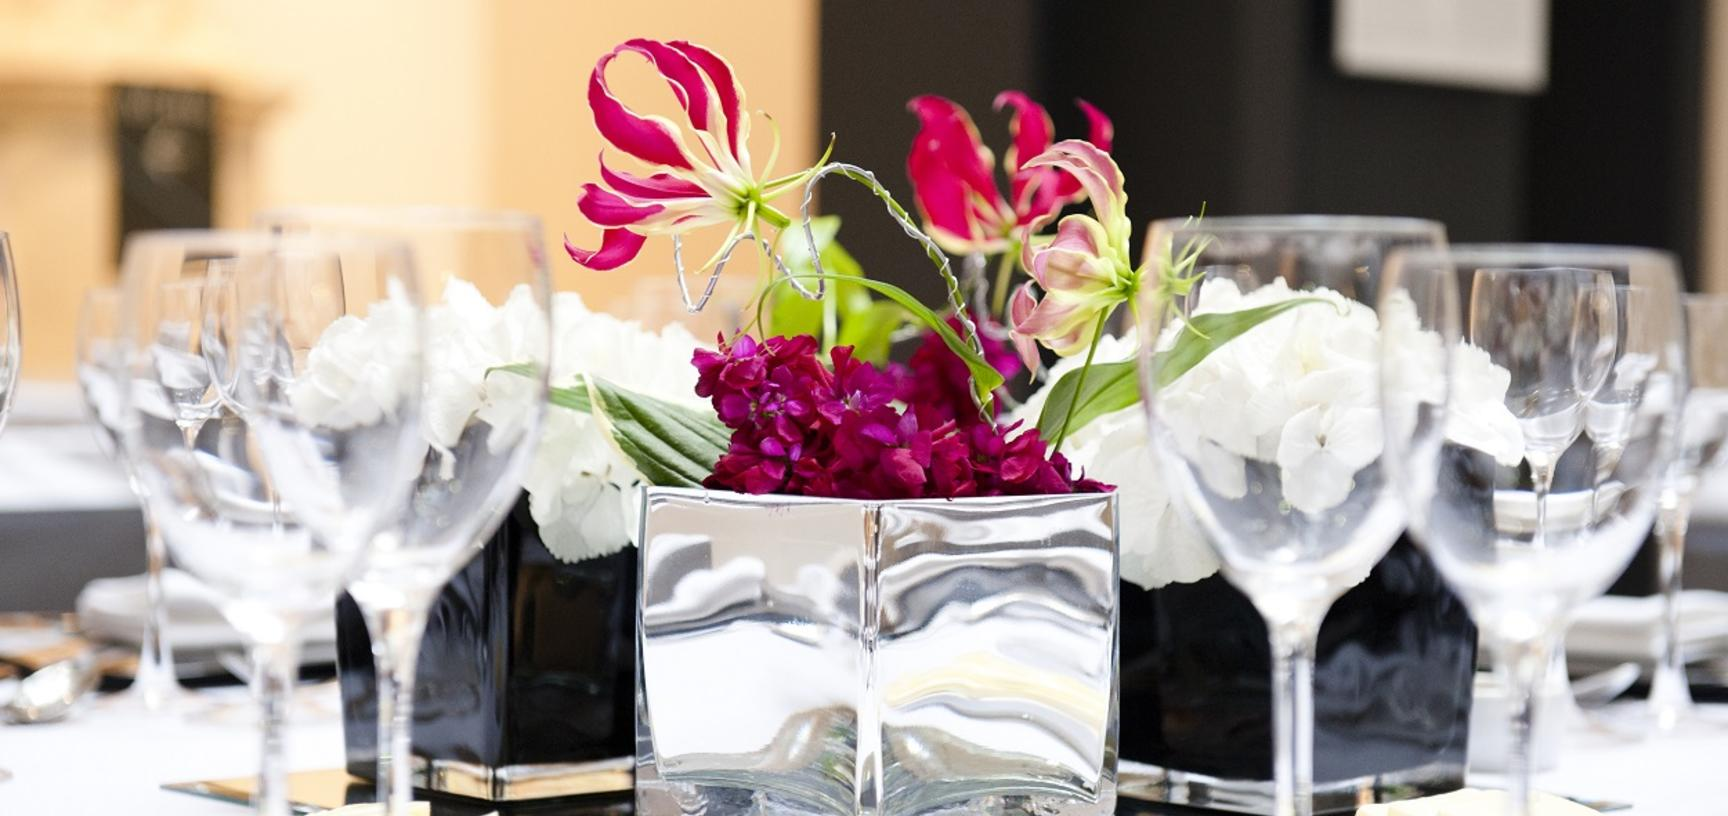 Table centrepieces for corporate dinner in Atrium